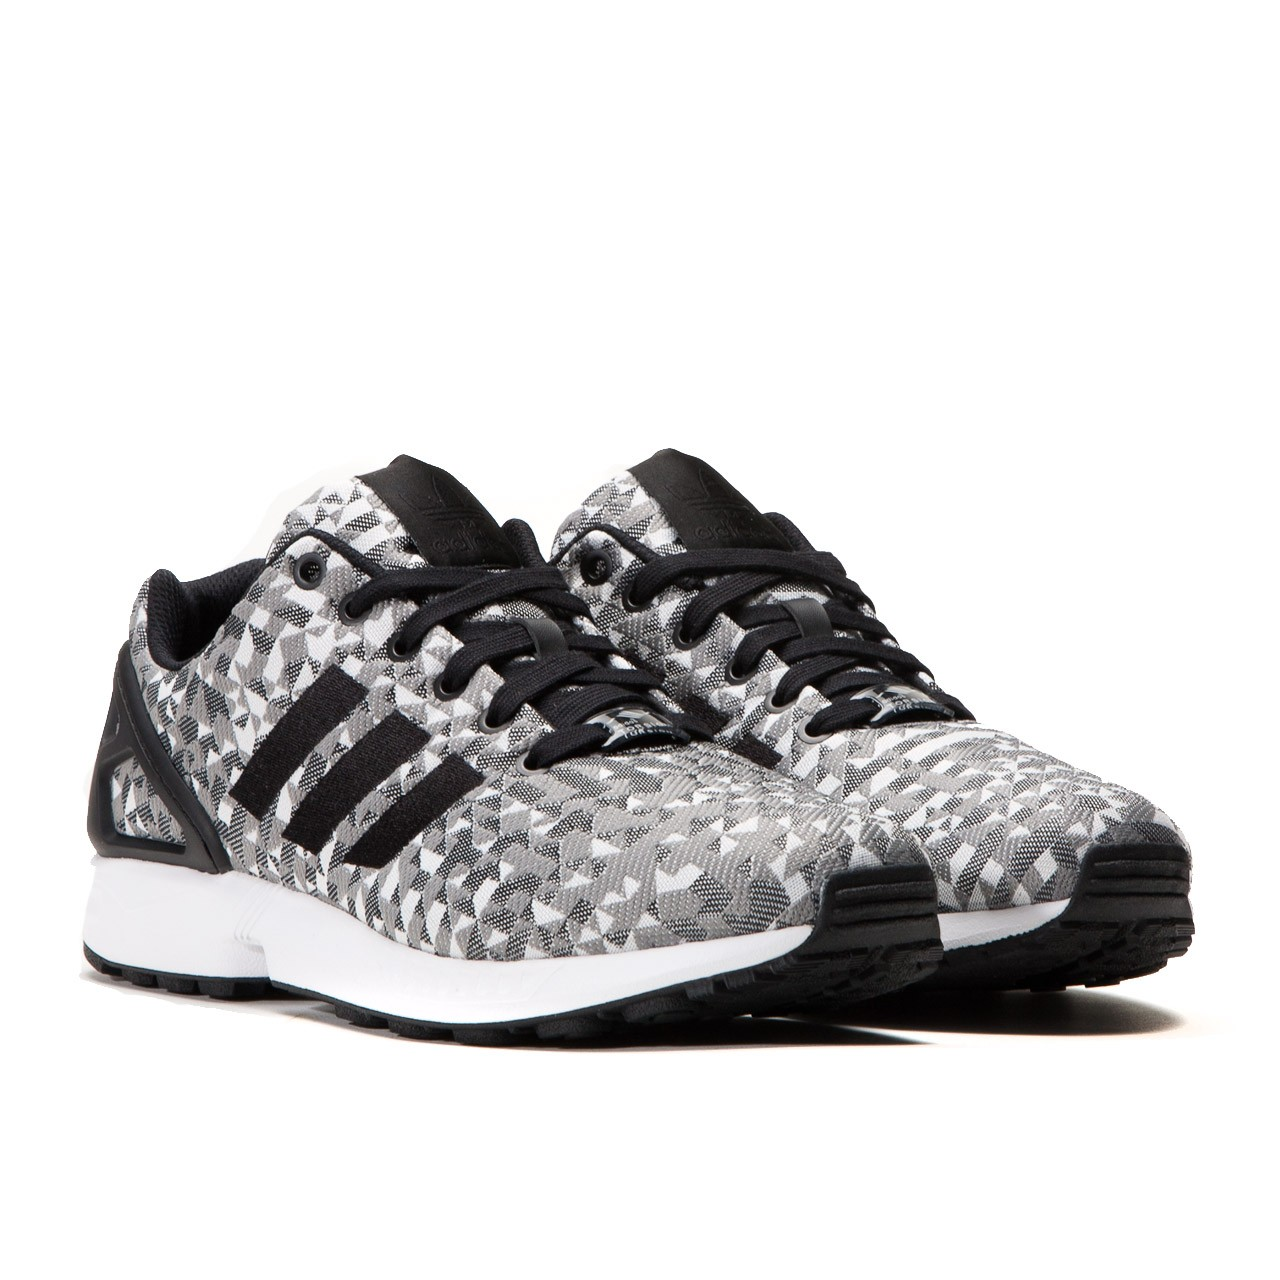 adidas Originals ZX Flux Weave Grey Prism retails for €89.90 (approximately  RM350) via Allike Store. a404806b4